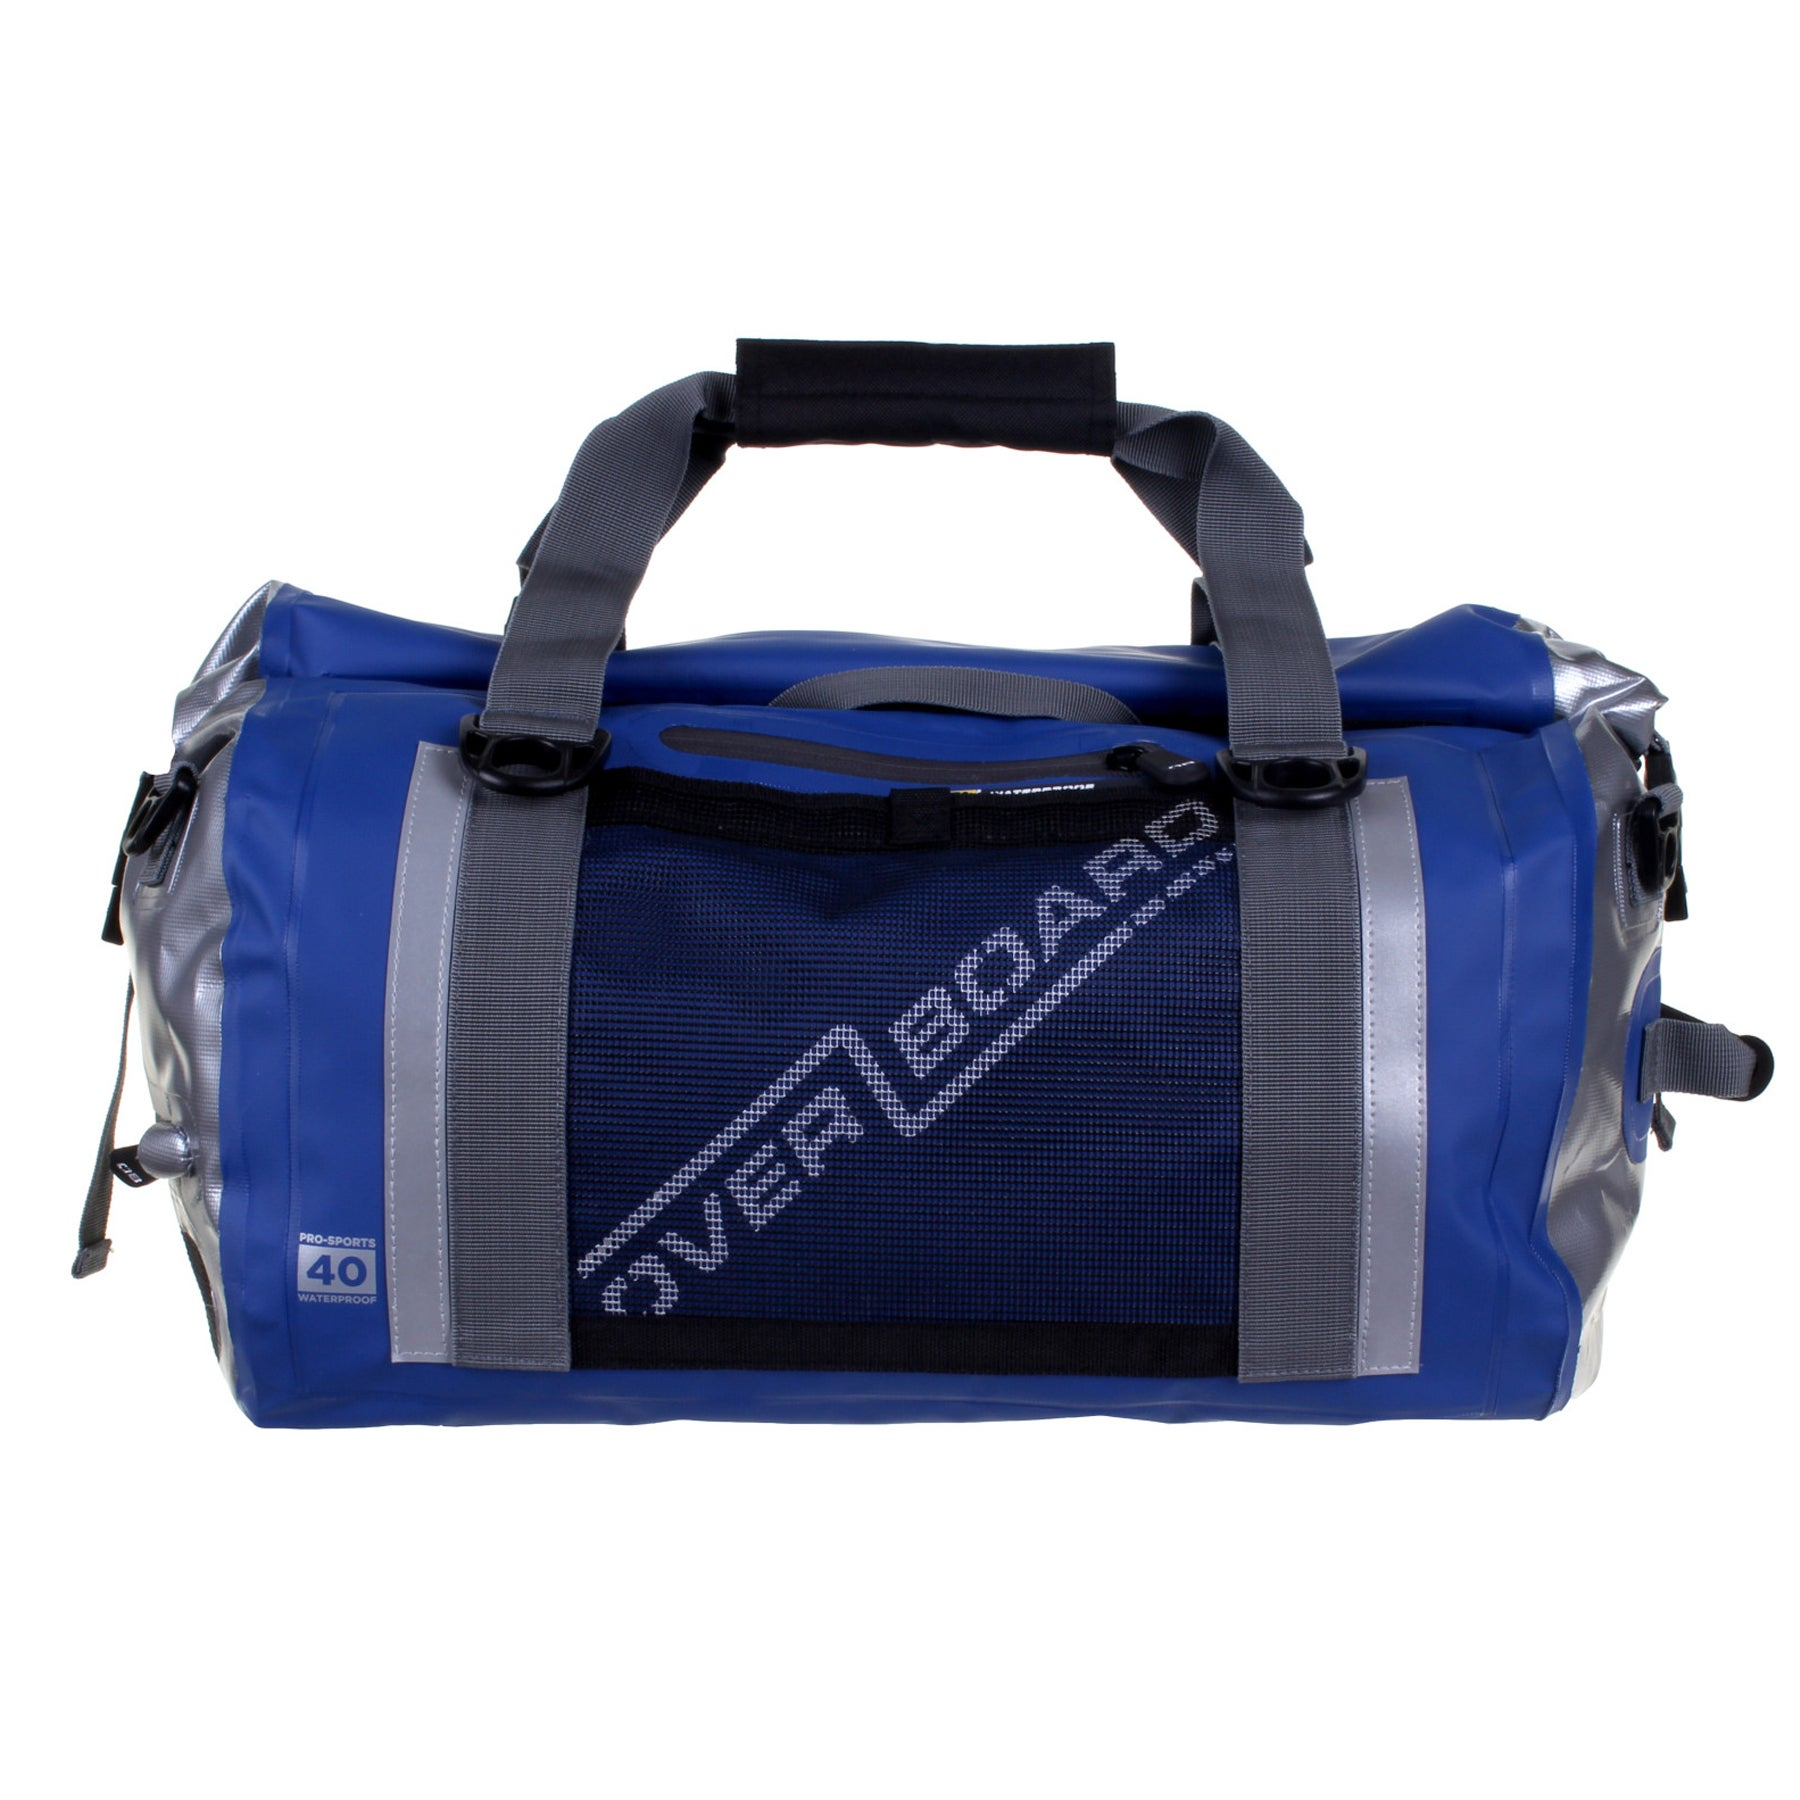 Waterproof Duffle Bags >> Overboard 40l Pro Sports Waterproof Duffle Bag Available From Surfdome